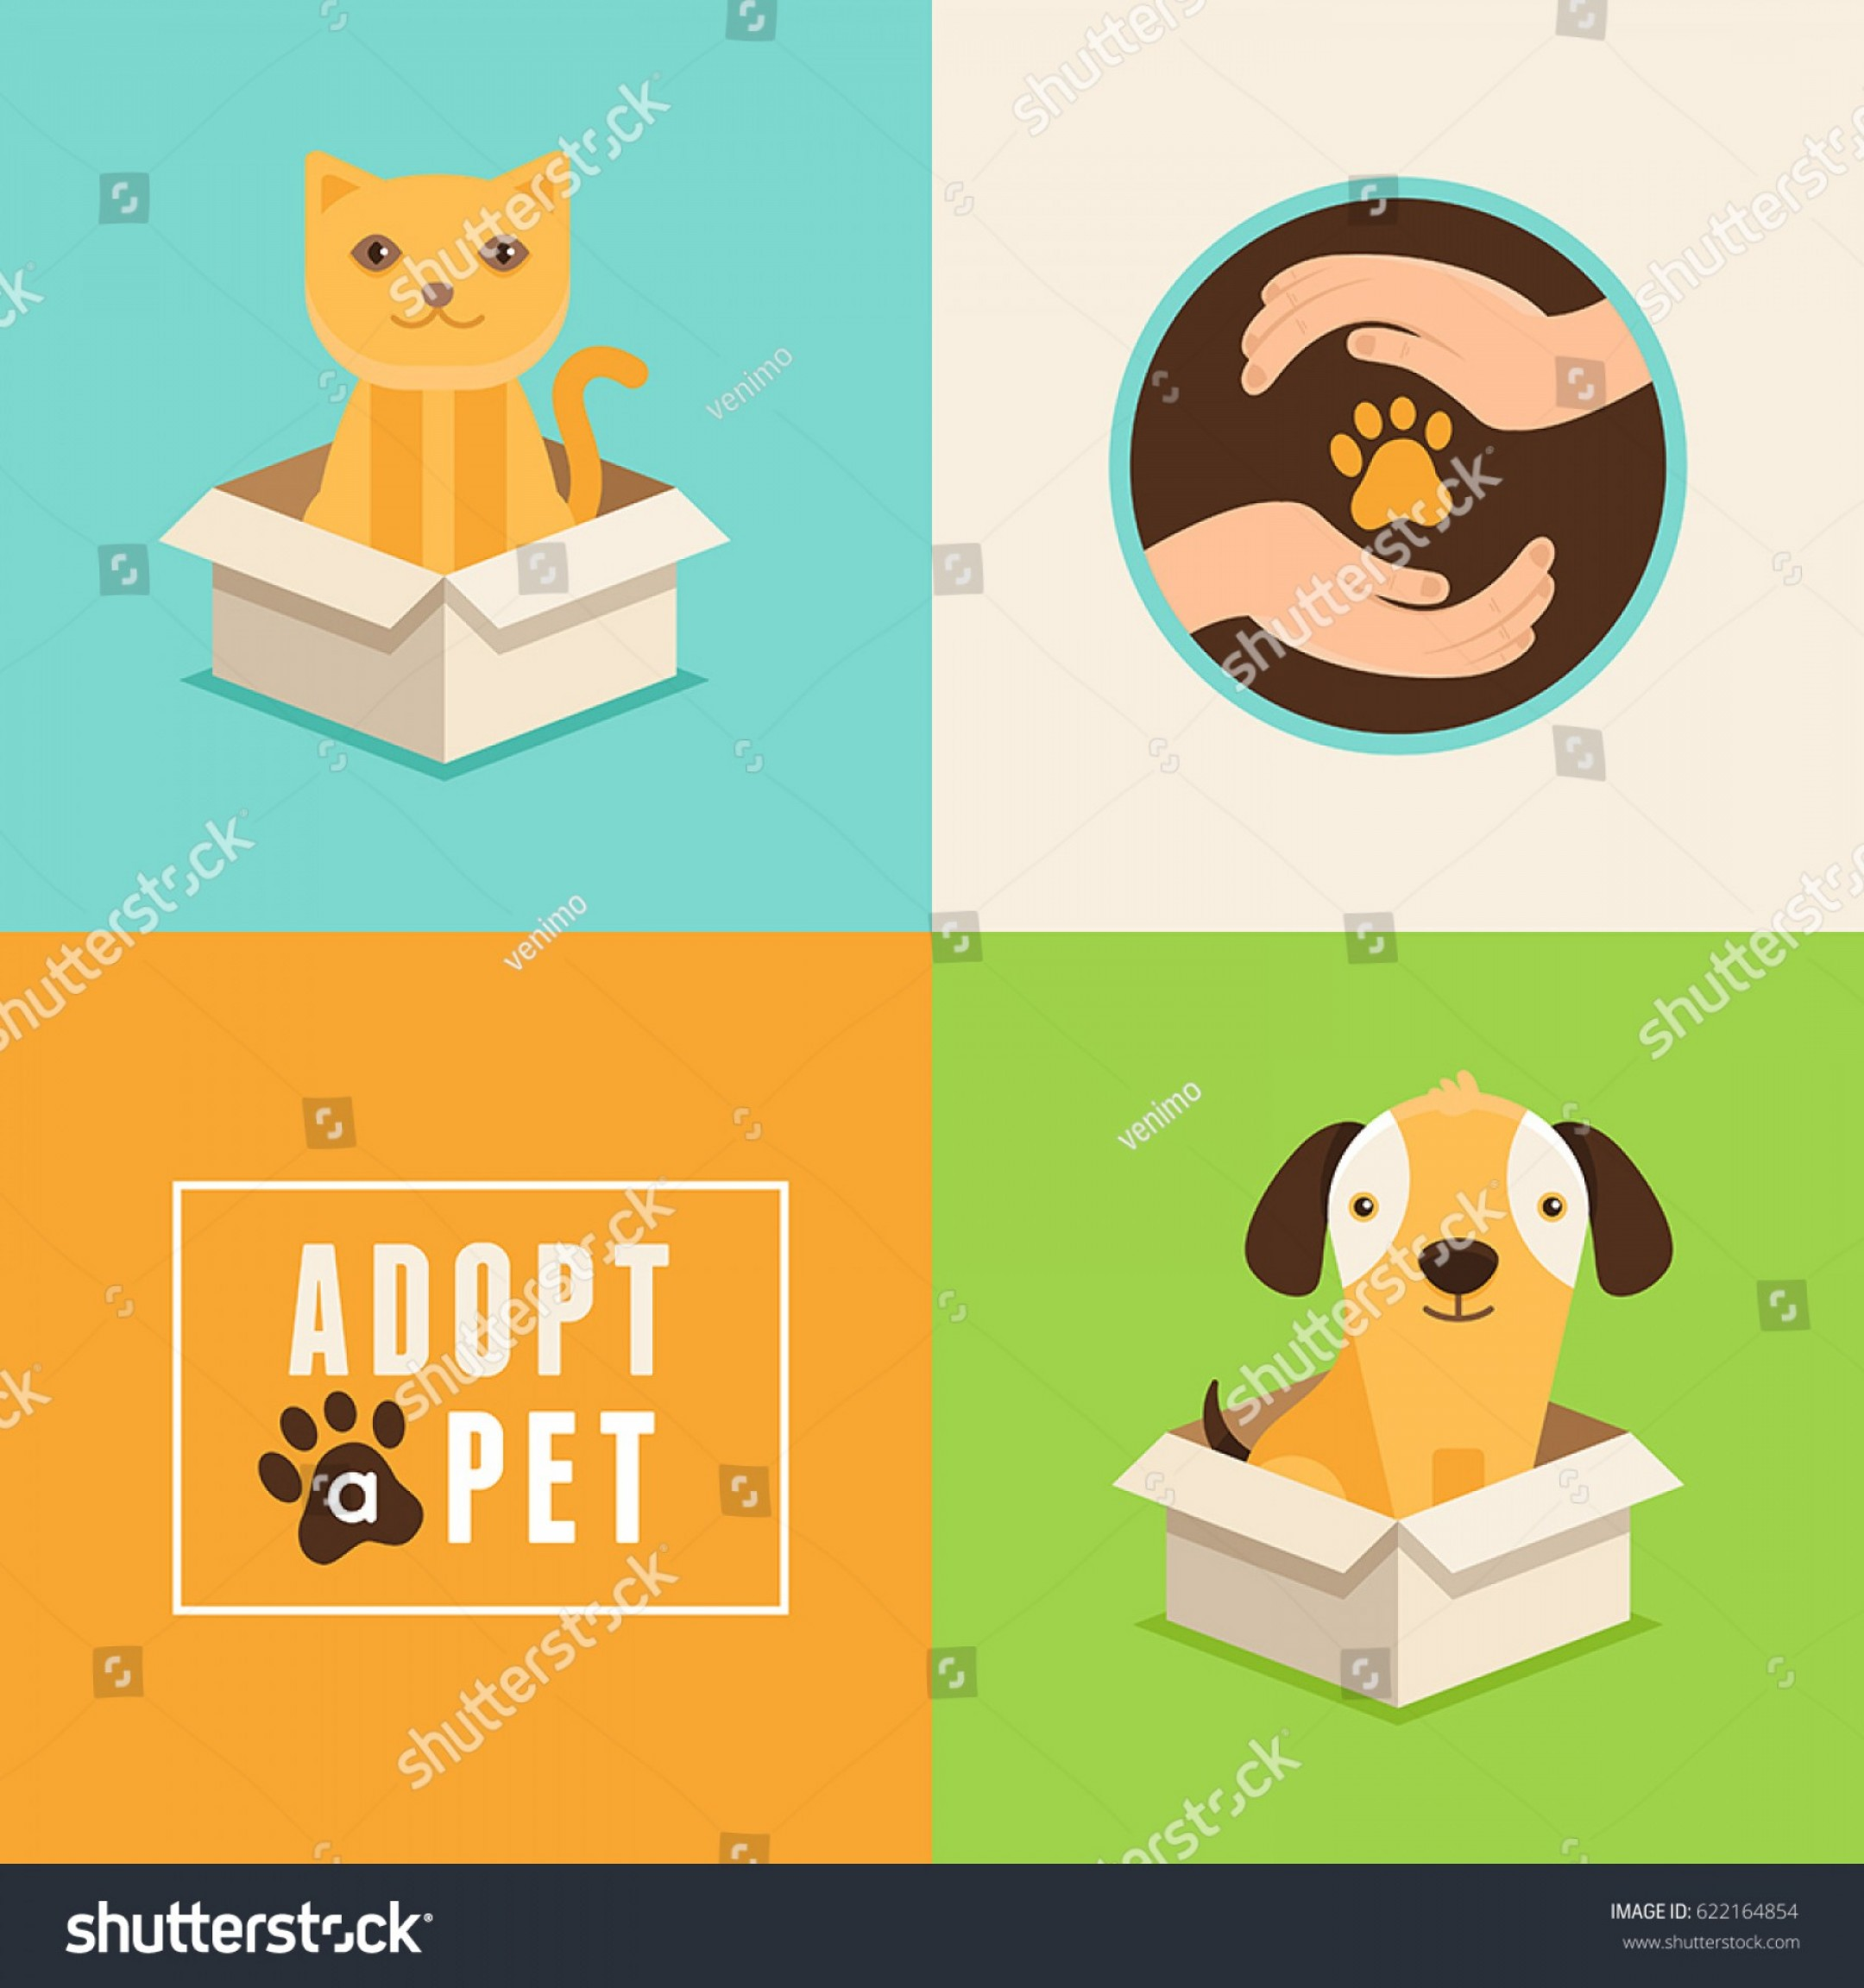 Adoption Art Animal Vector: Vector Icons Flat Style Adopt Pet